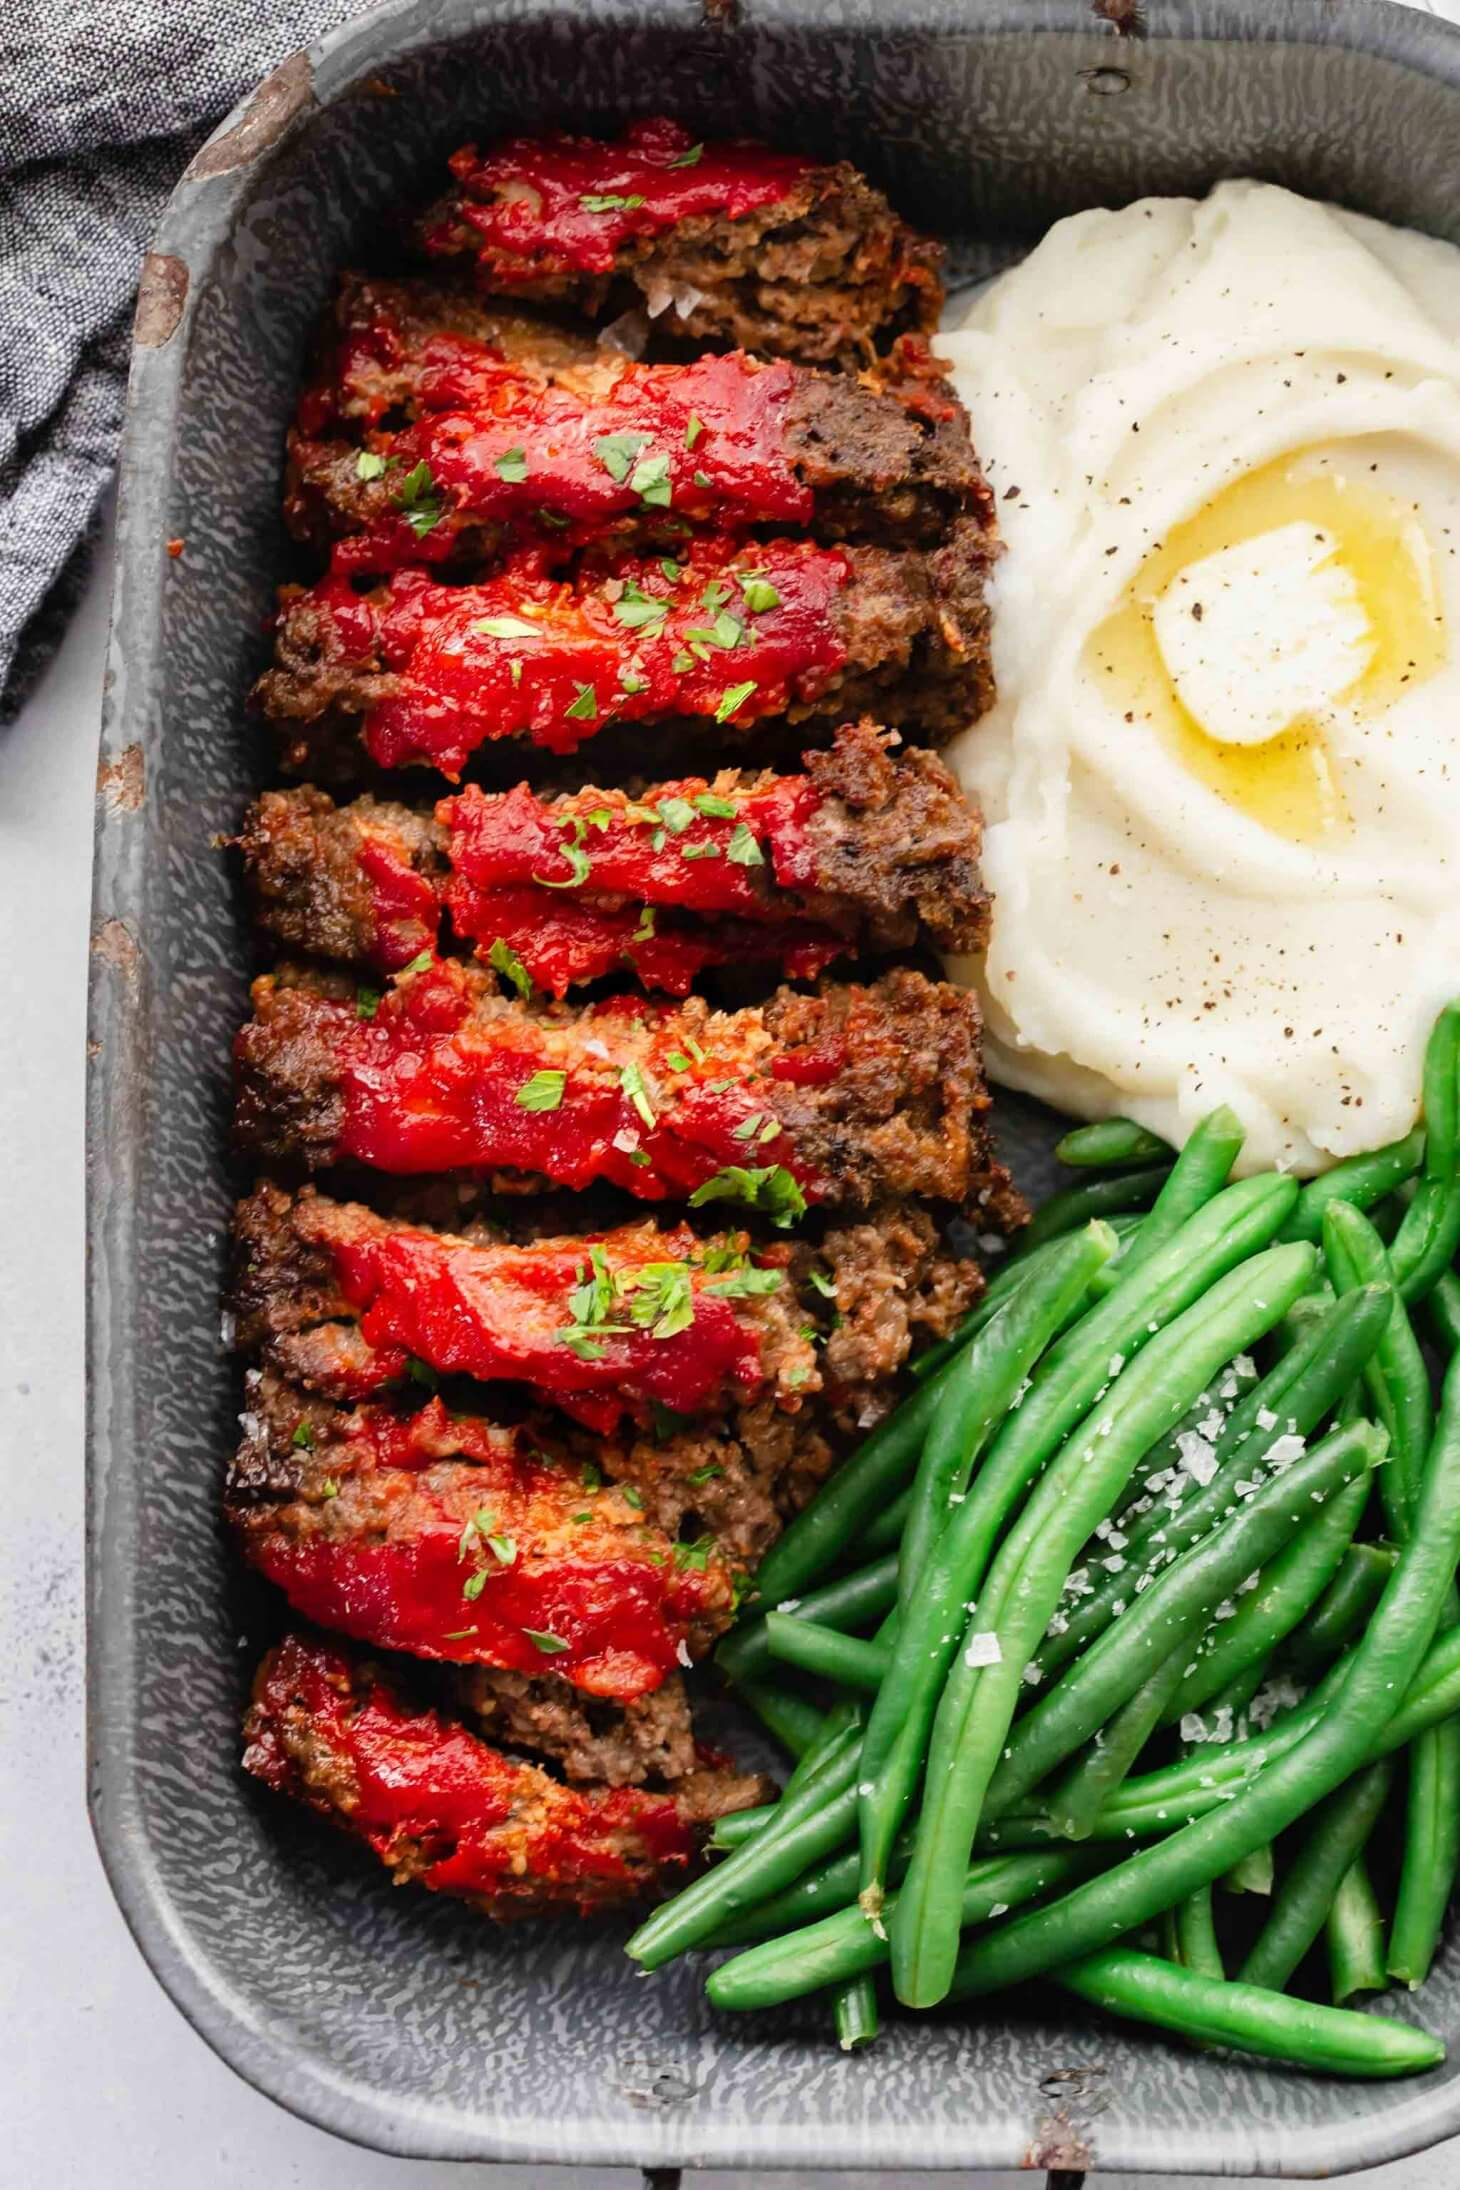 Sliced BOSTON MARKET meatloaf in serving tray with green beans and mashed potatoes.